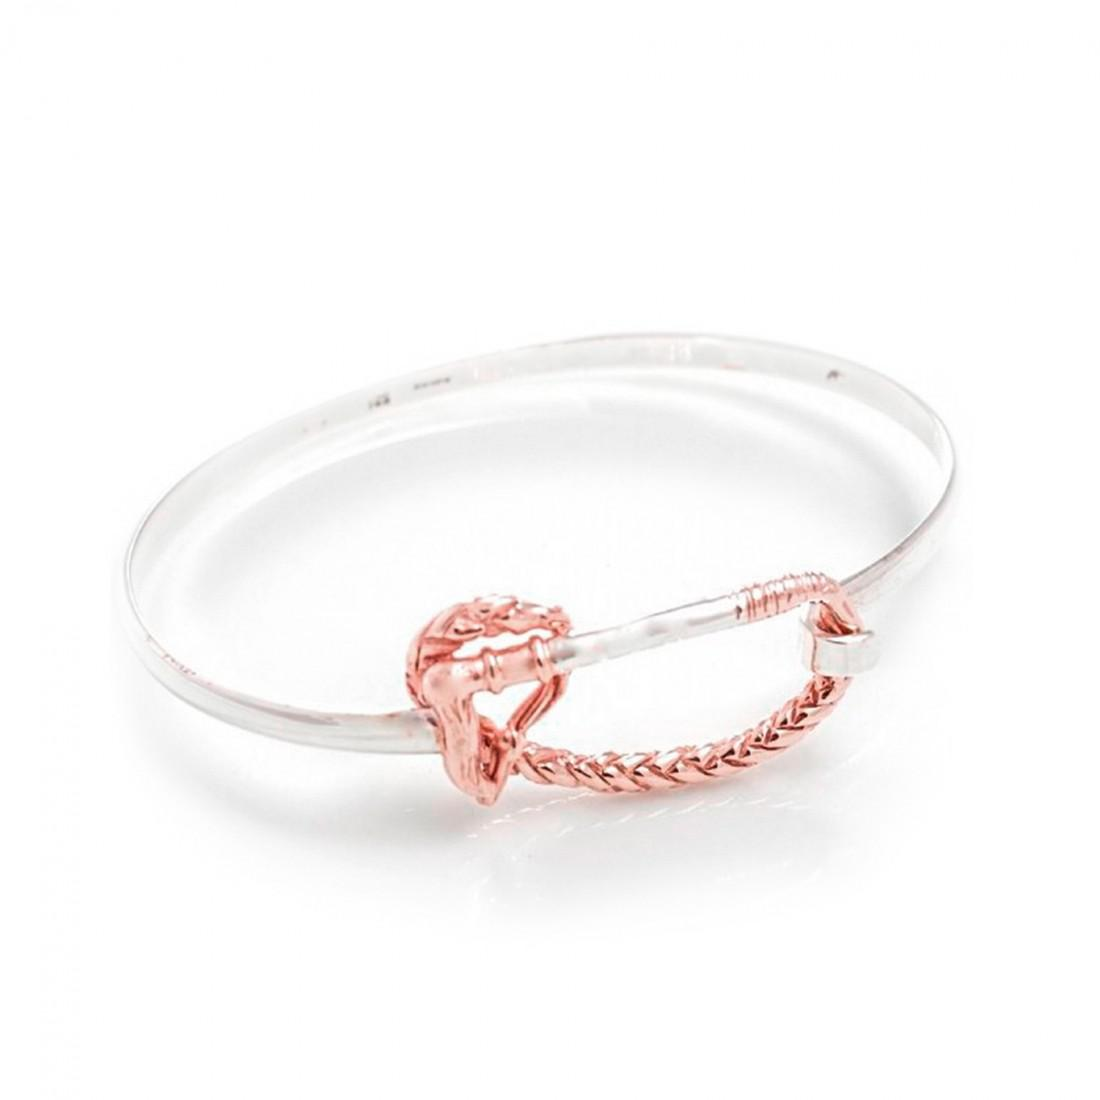 Exclusive Sterling Silver & 18ct Rose Gold Plate Whip Bangle